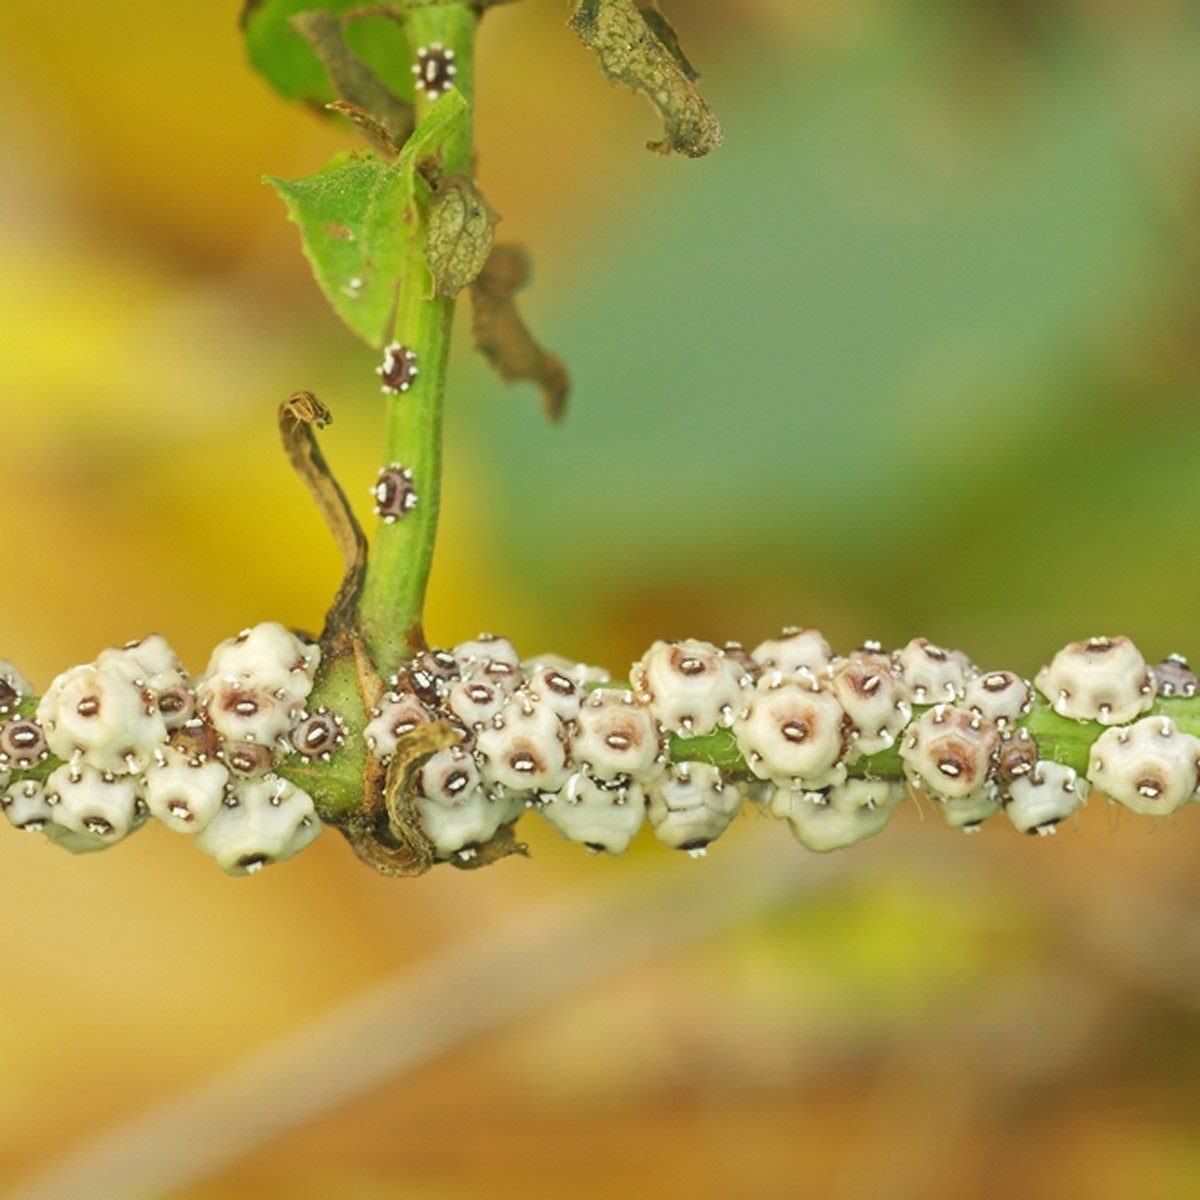 scale insect